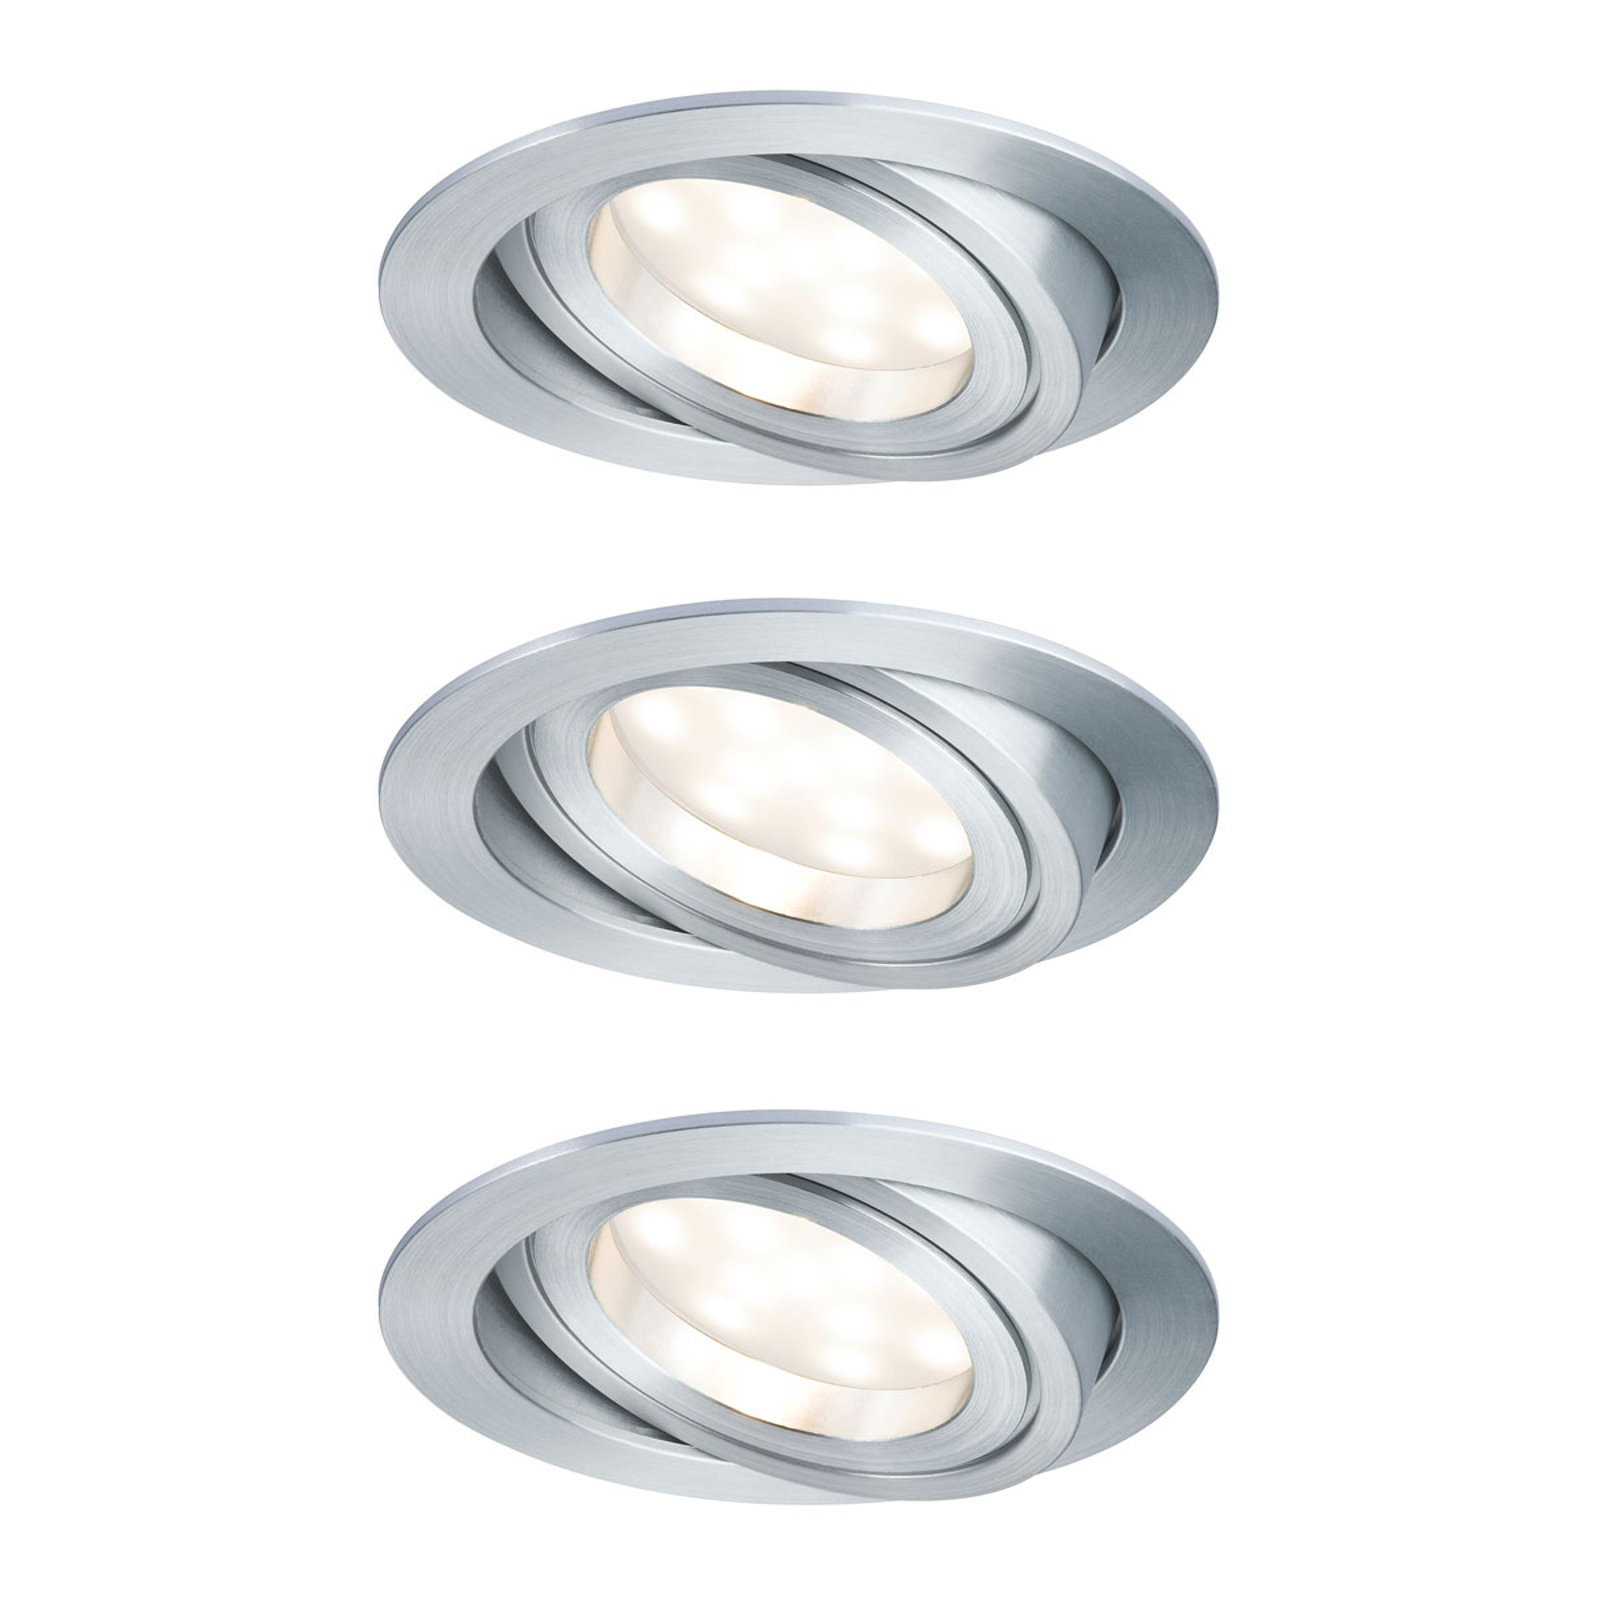 Paulmann spot LED Coin 3x7 W dimm./inclinable, alu